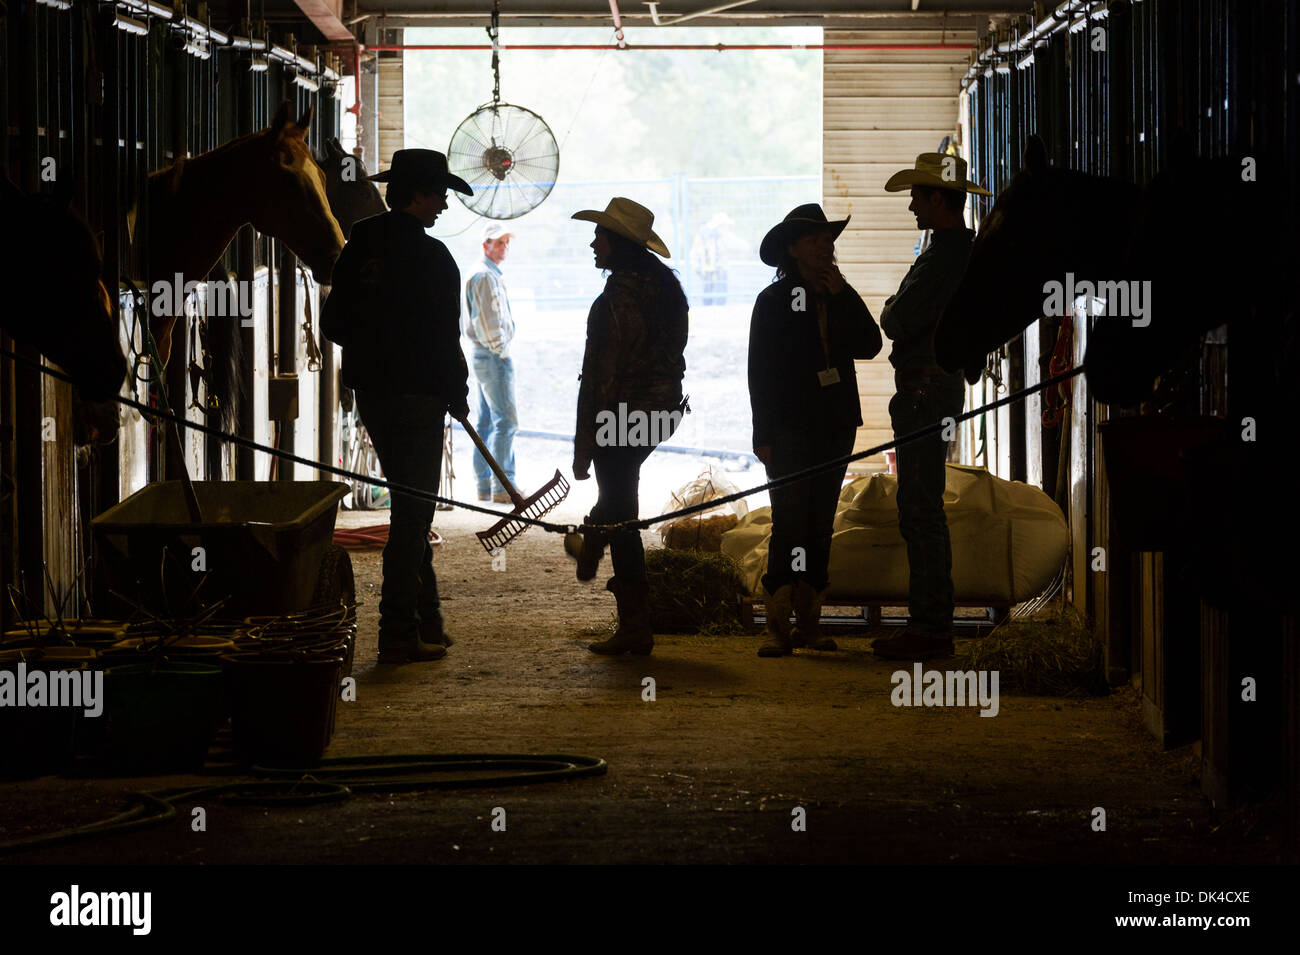 Cowboys and girls in the horse barns at the Calgary StampedeStock Photo